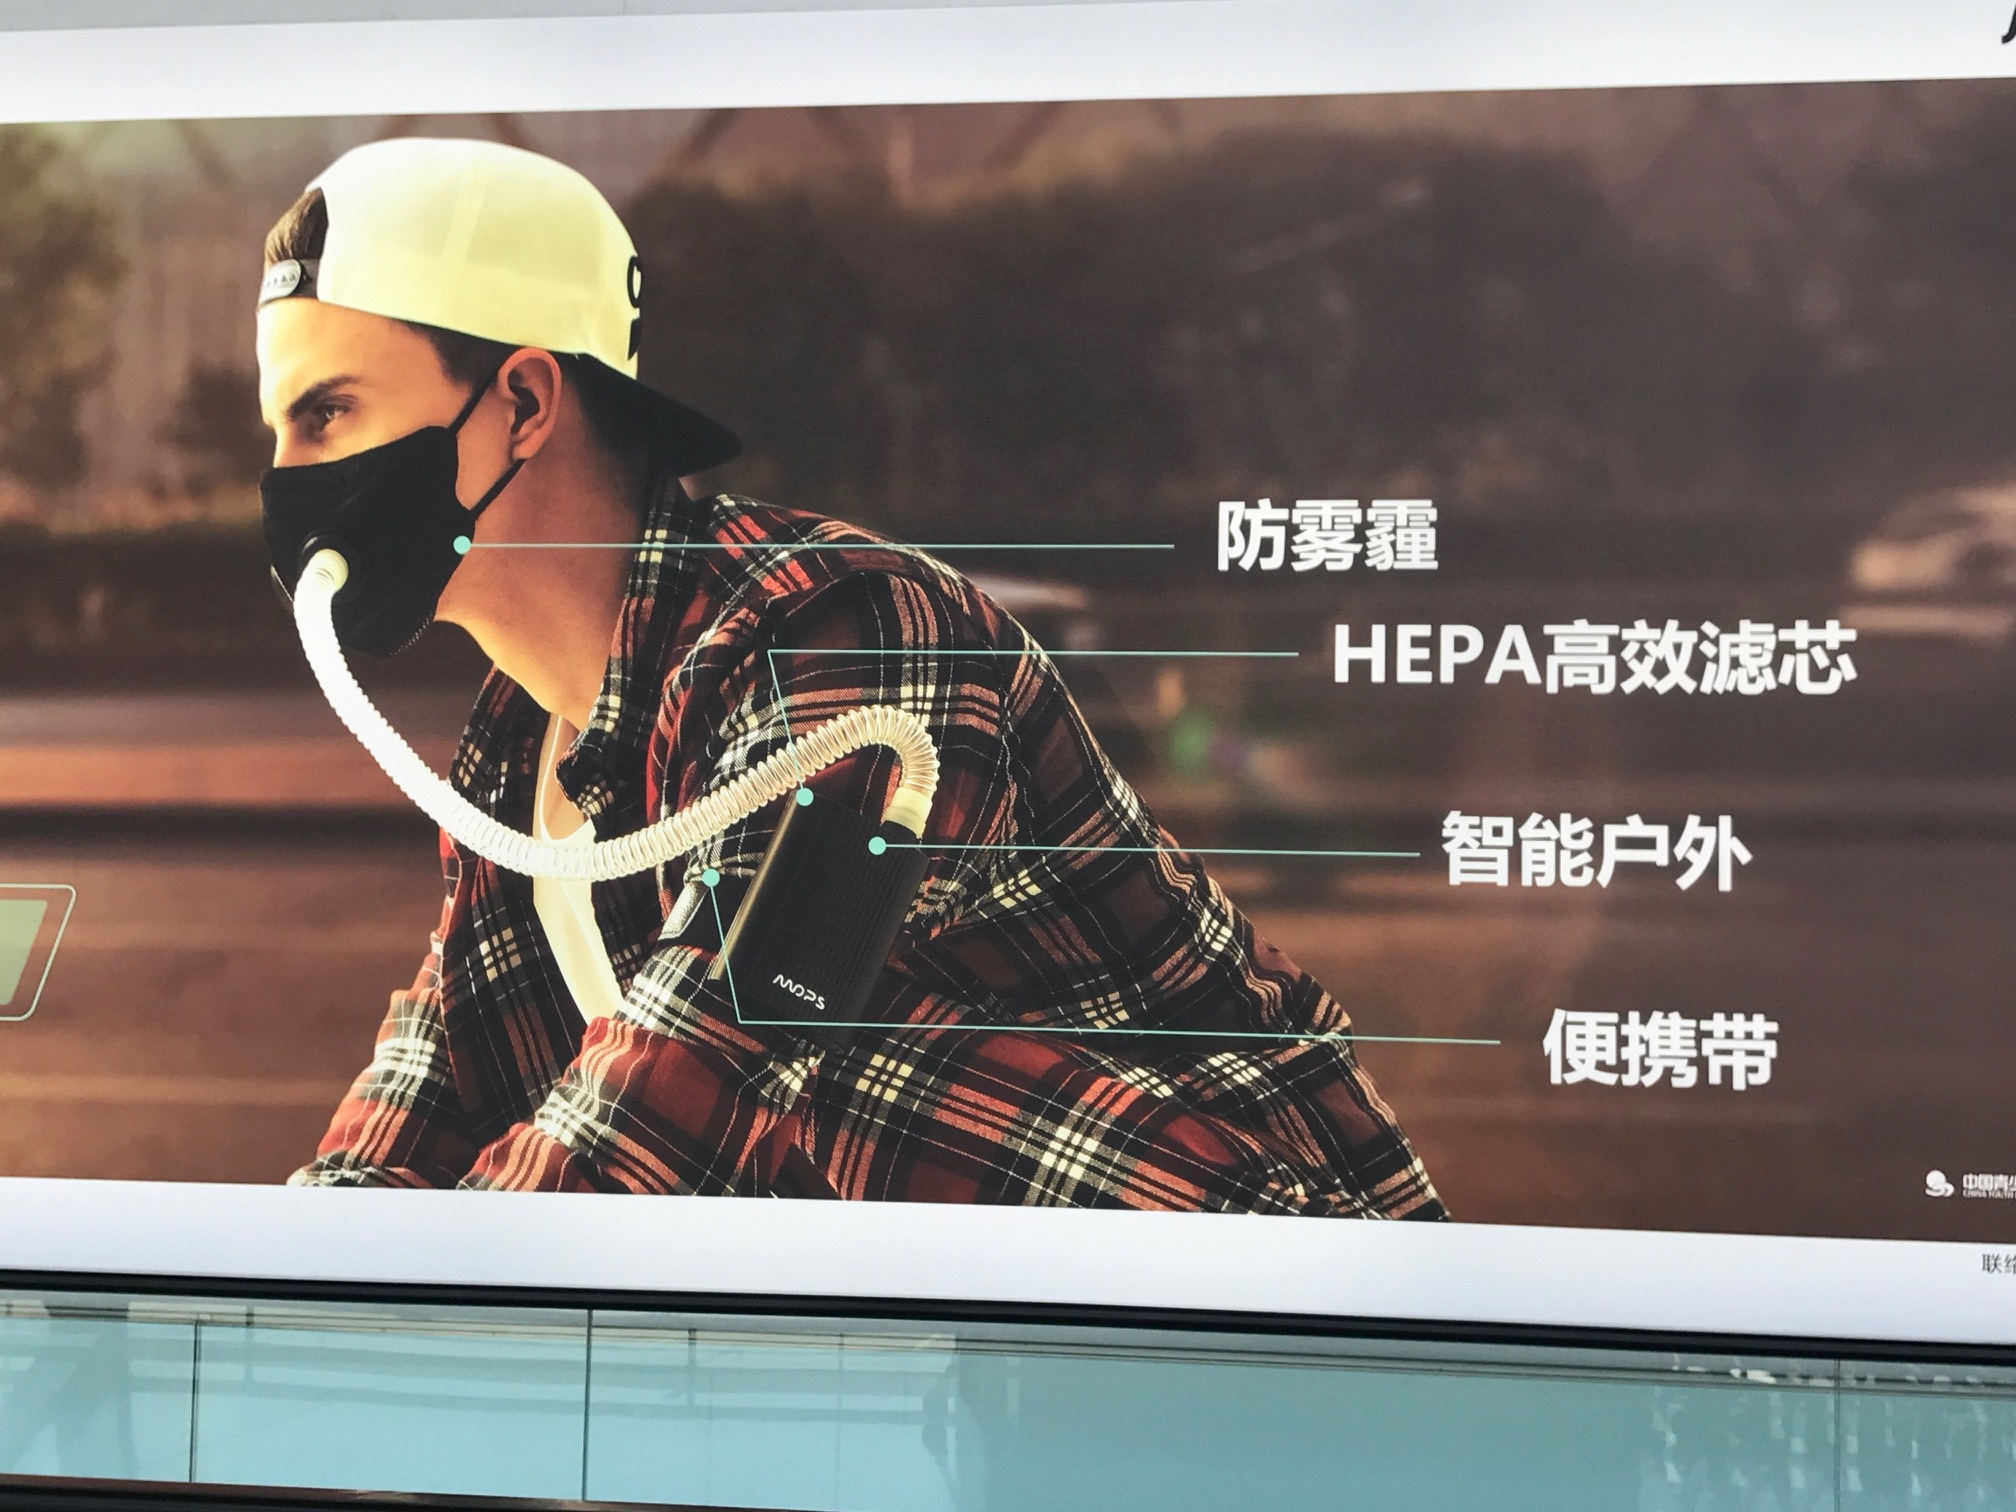 First ad at Beiing airport